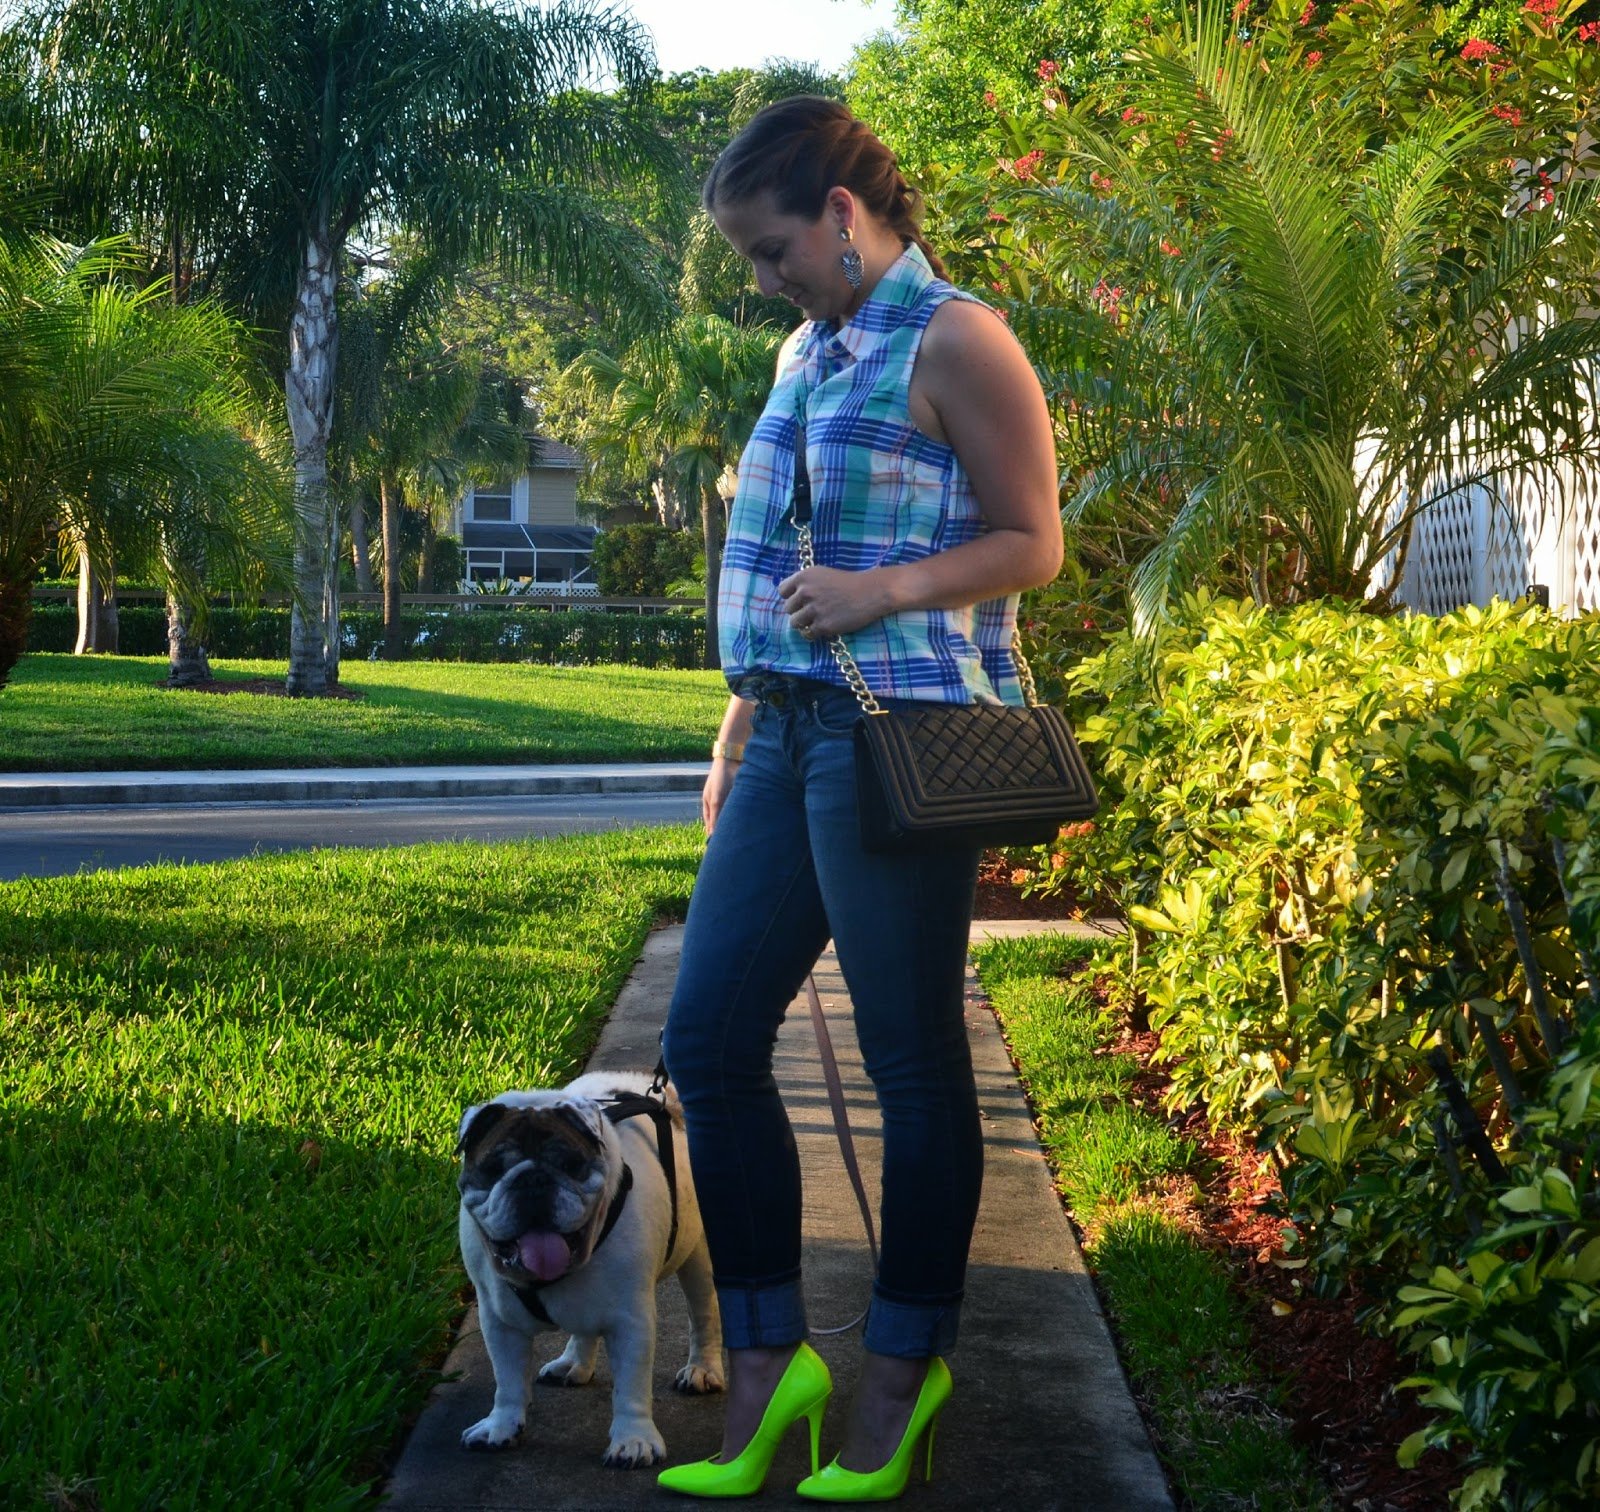 Skinny jeans - neon pumps - madras top - black clucth - english bulldog